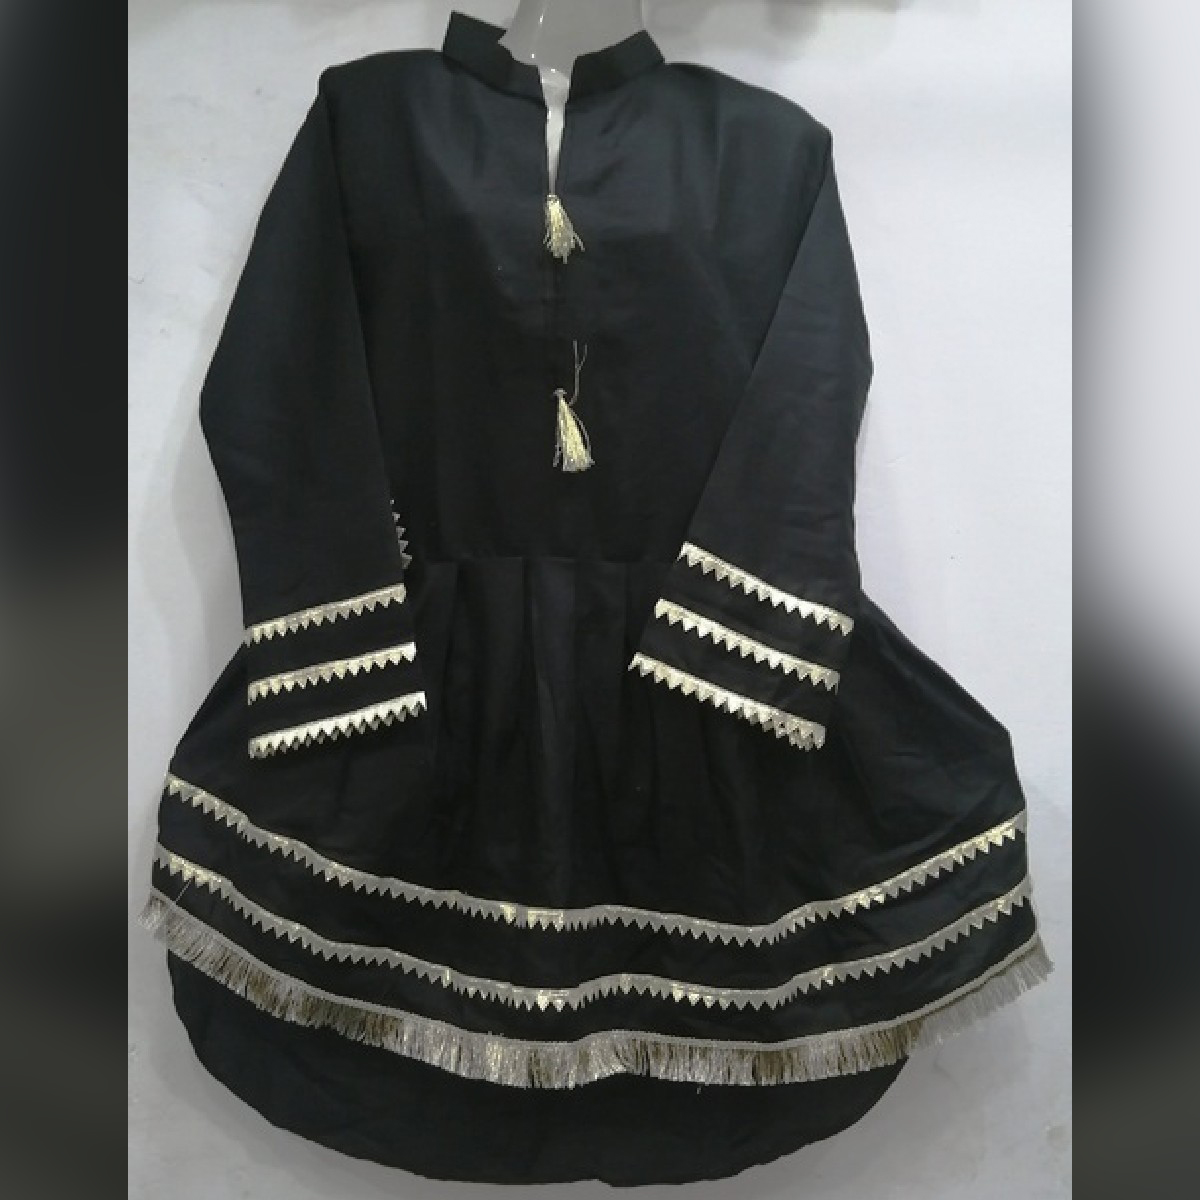 Stylish Top Lawn Long Tail Gota Ladies Frock Ready to Wear for Girls and Women